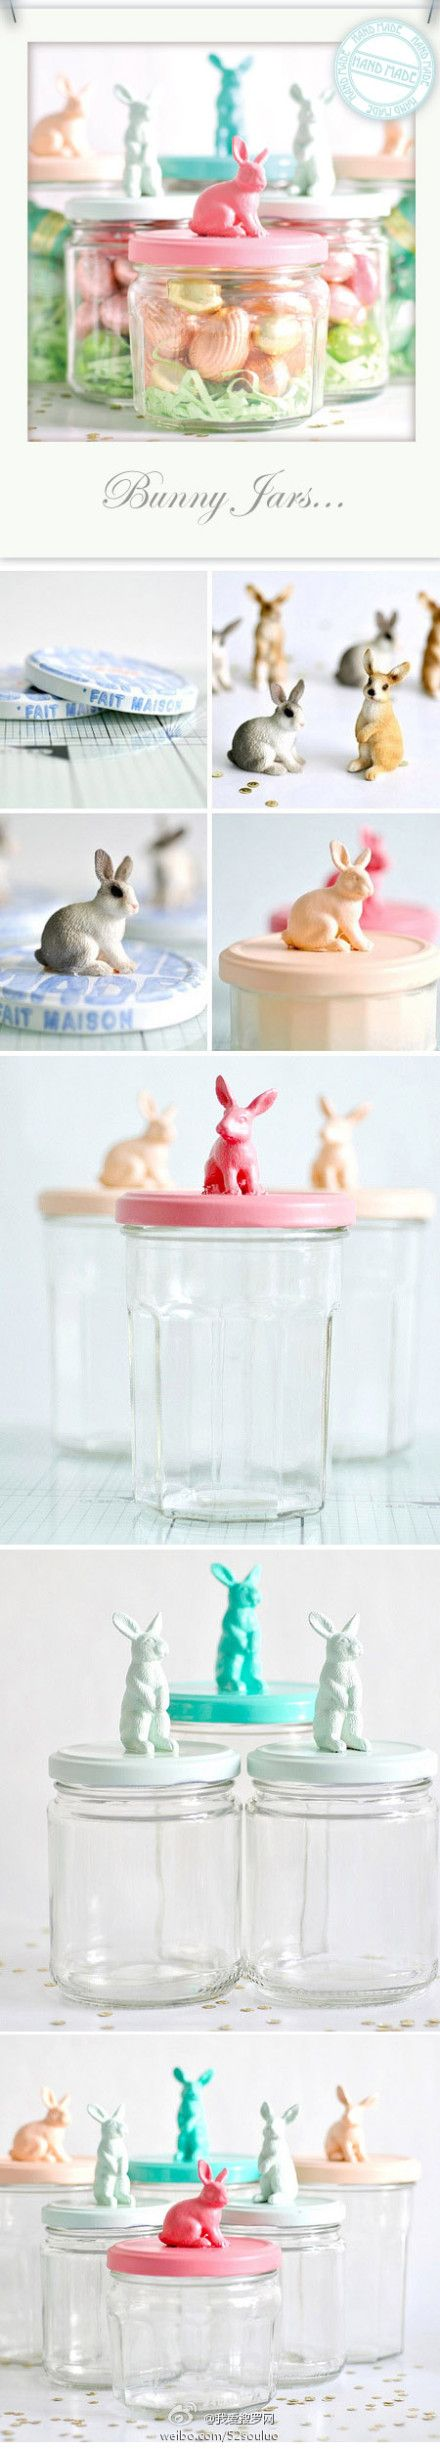 bunny jar topper tutorial: Bunnies Jars, Diy Bunnies, Crafts Ideas, Cute Ideas, Easter Bunnies, Easter Gifts, Jars Toppers, Easter Treats, Animal